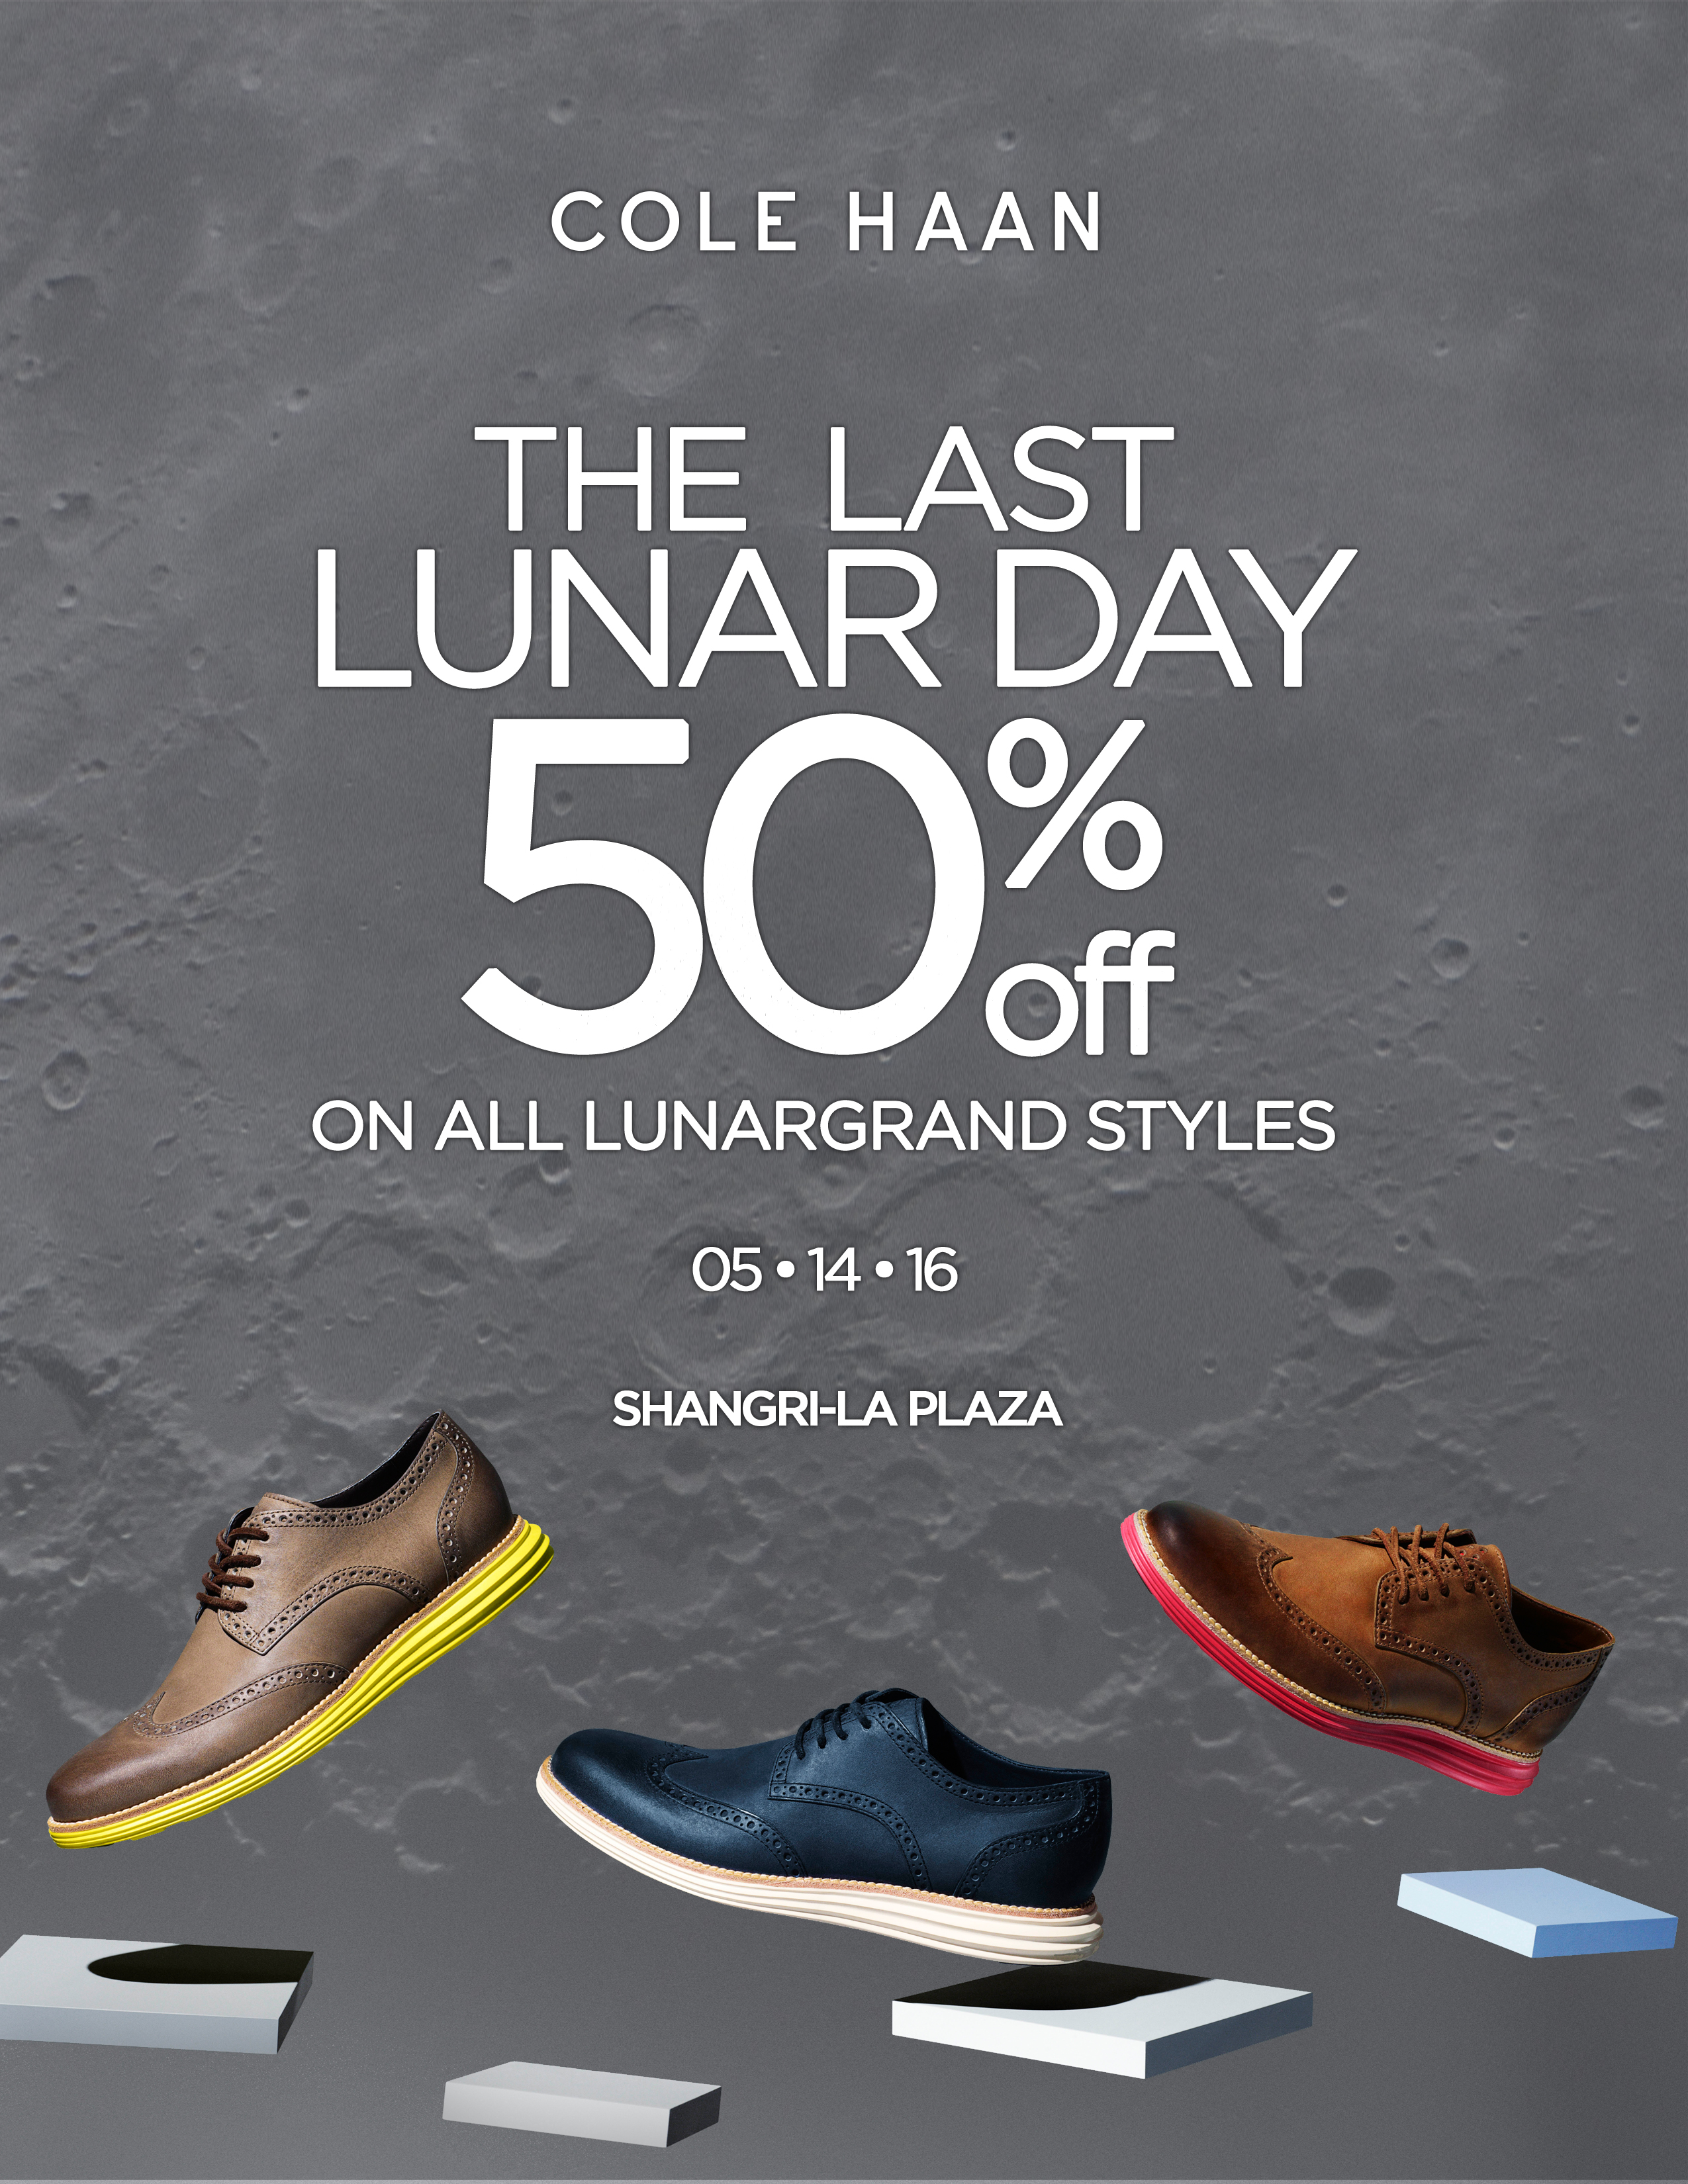 Cole Haan Last Lunar Day: May 14, 2016